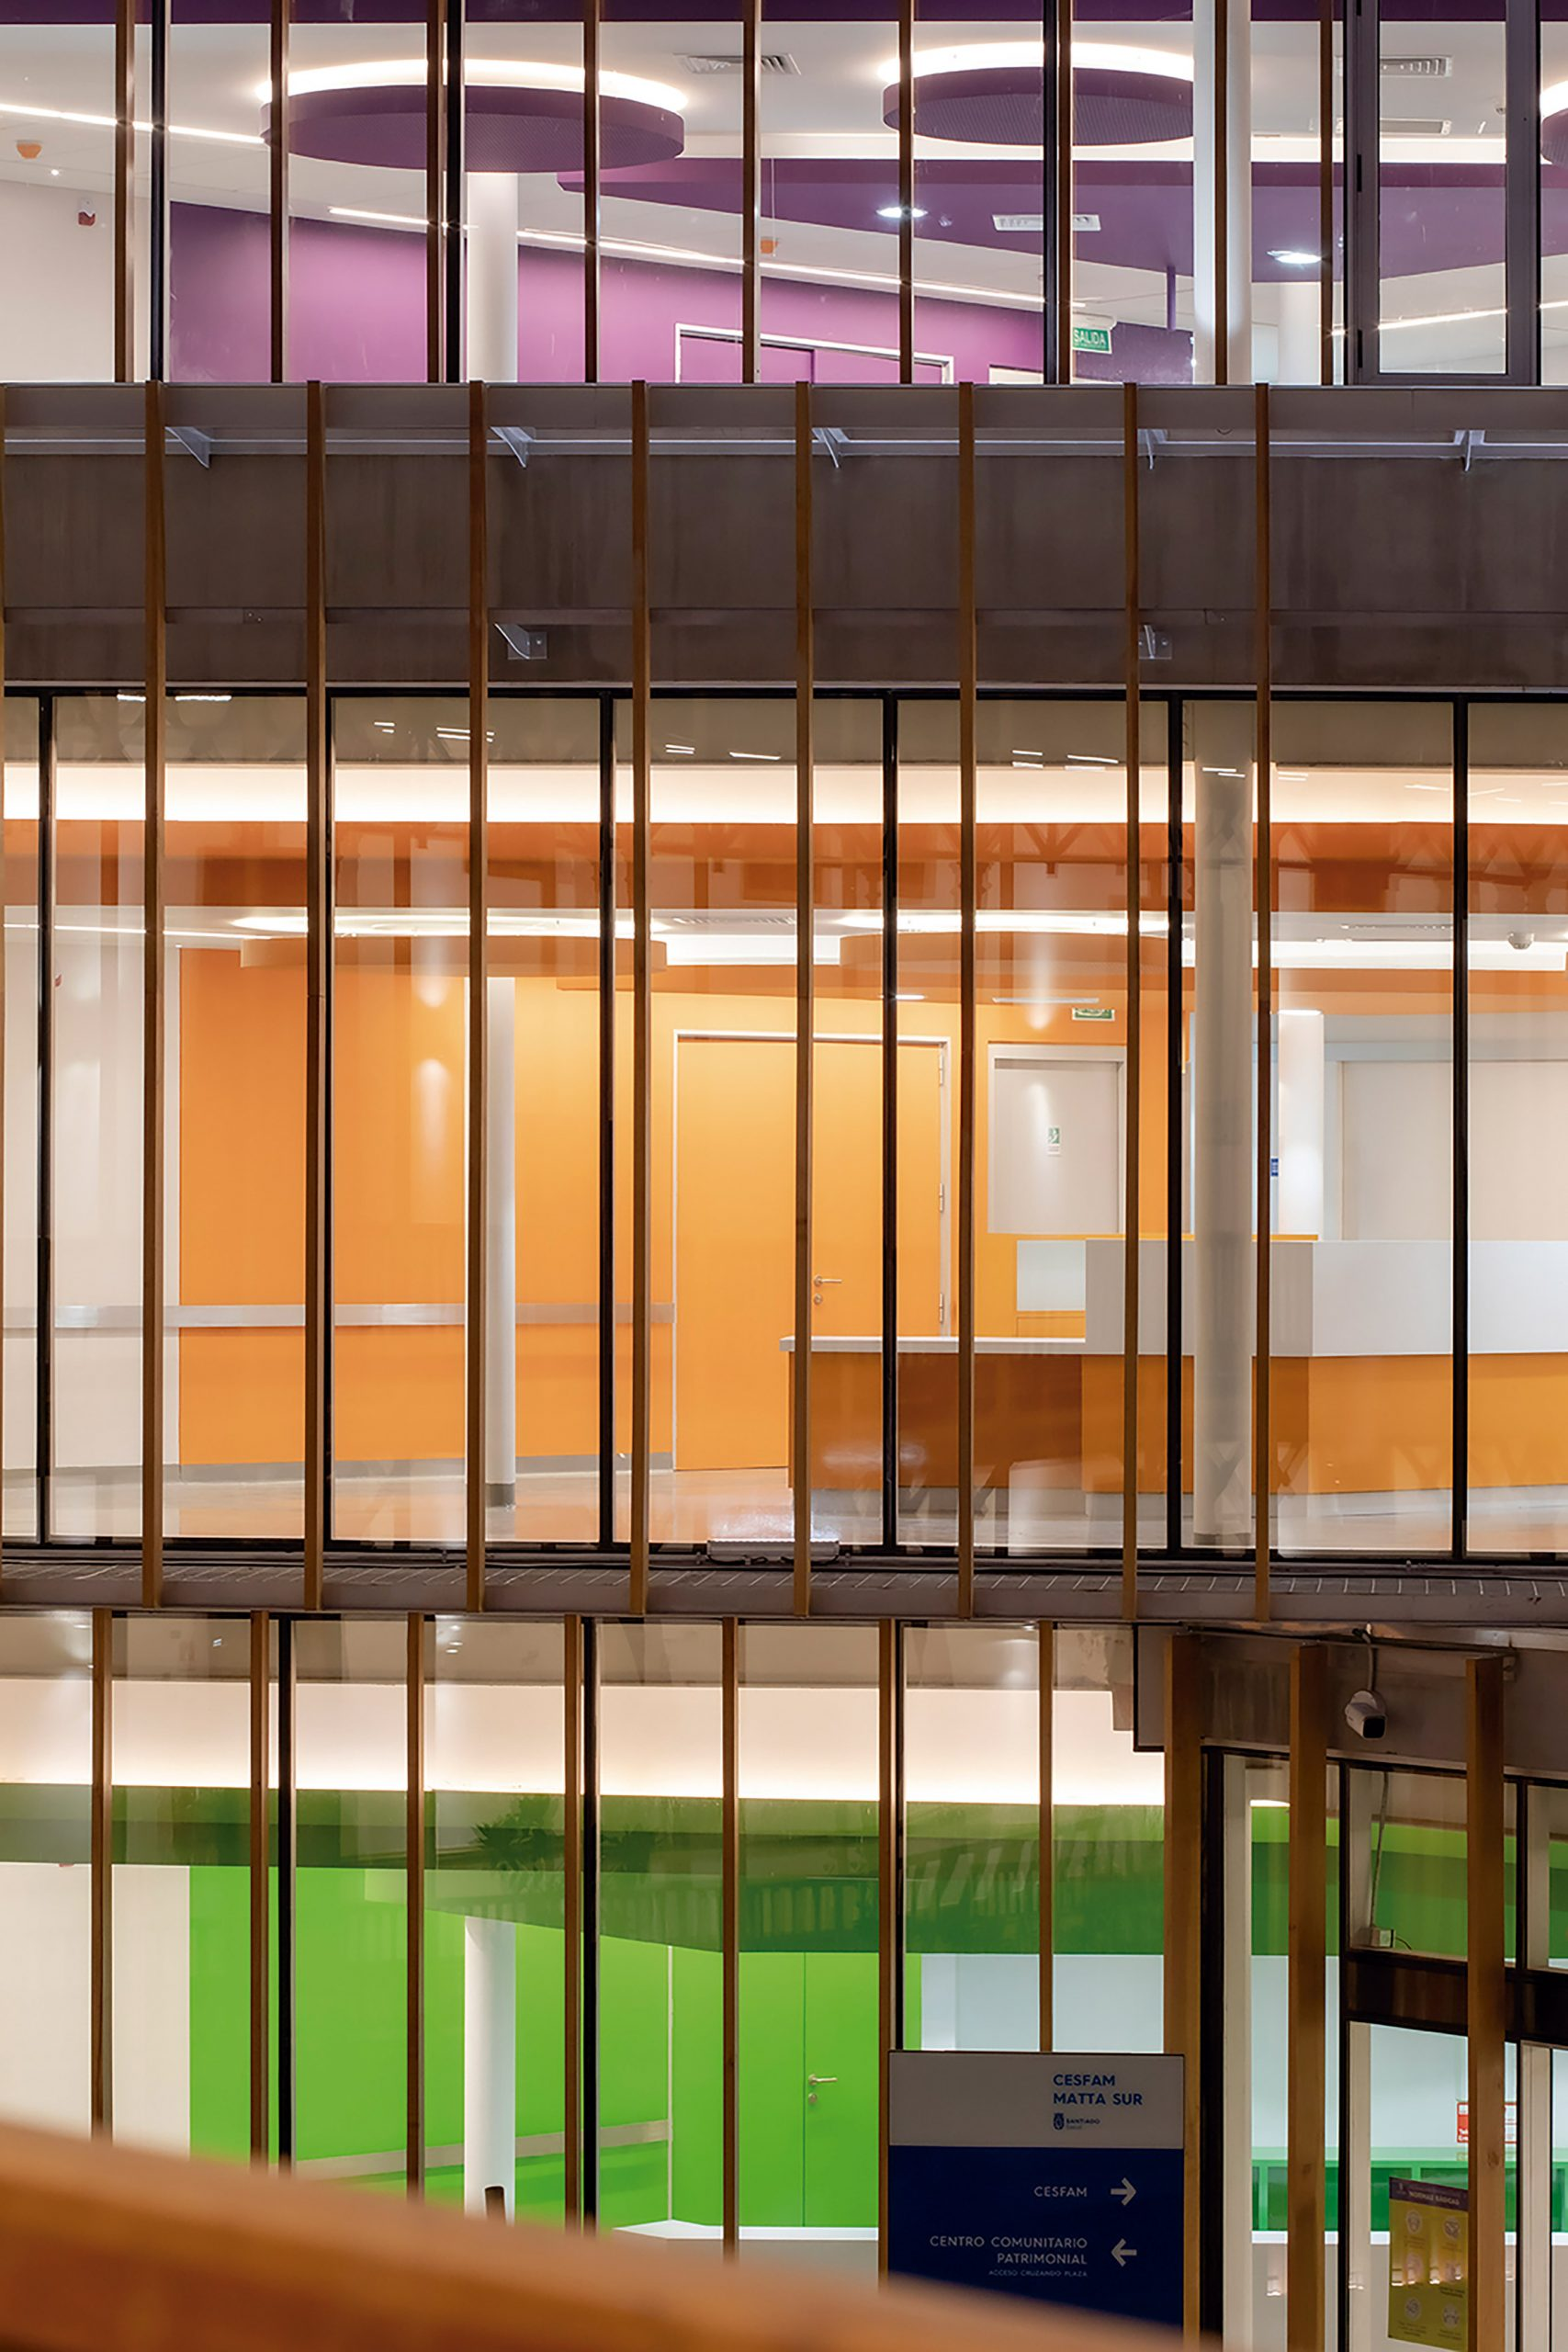 Luis Vidal + Architects is a Spanish firm